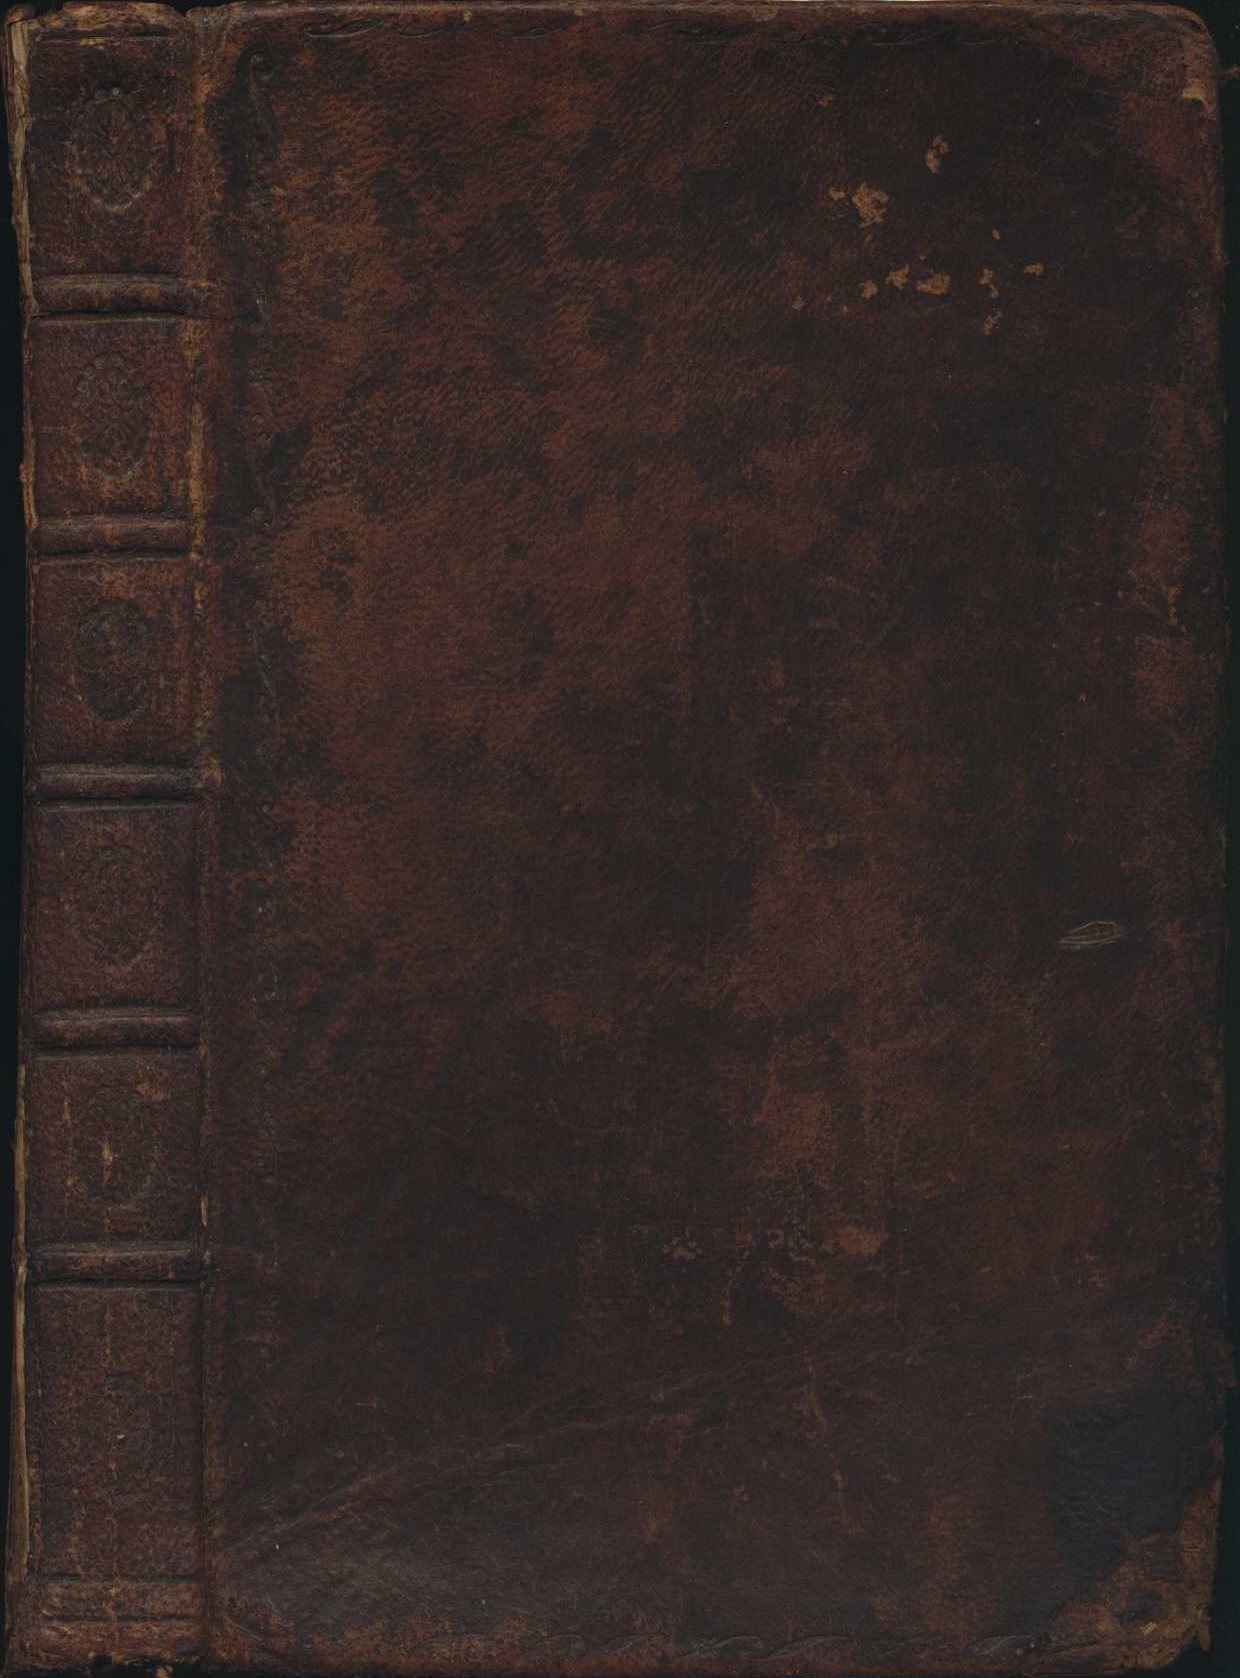 The Psalms of David in metre. Glasgow: J. and M. Robertson, 1794.